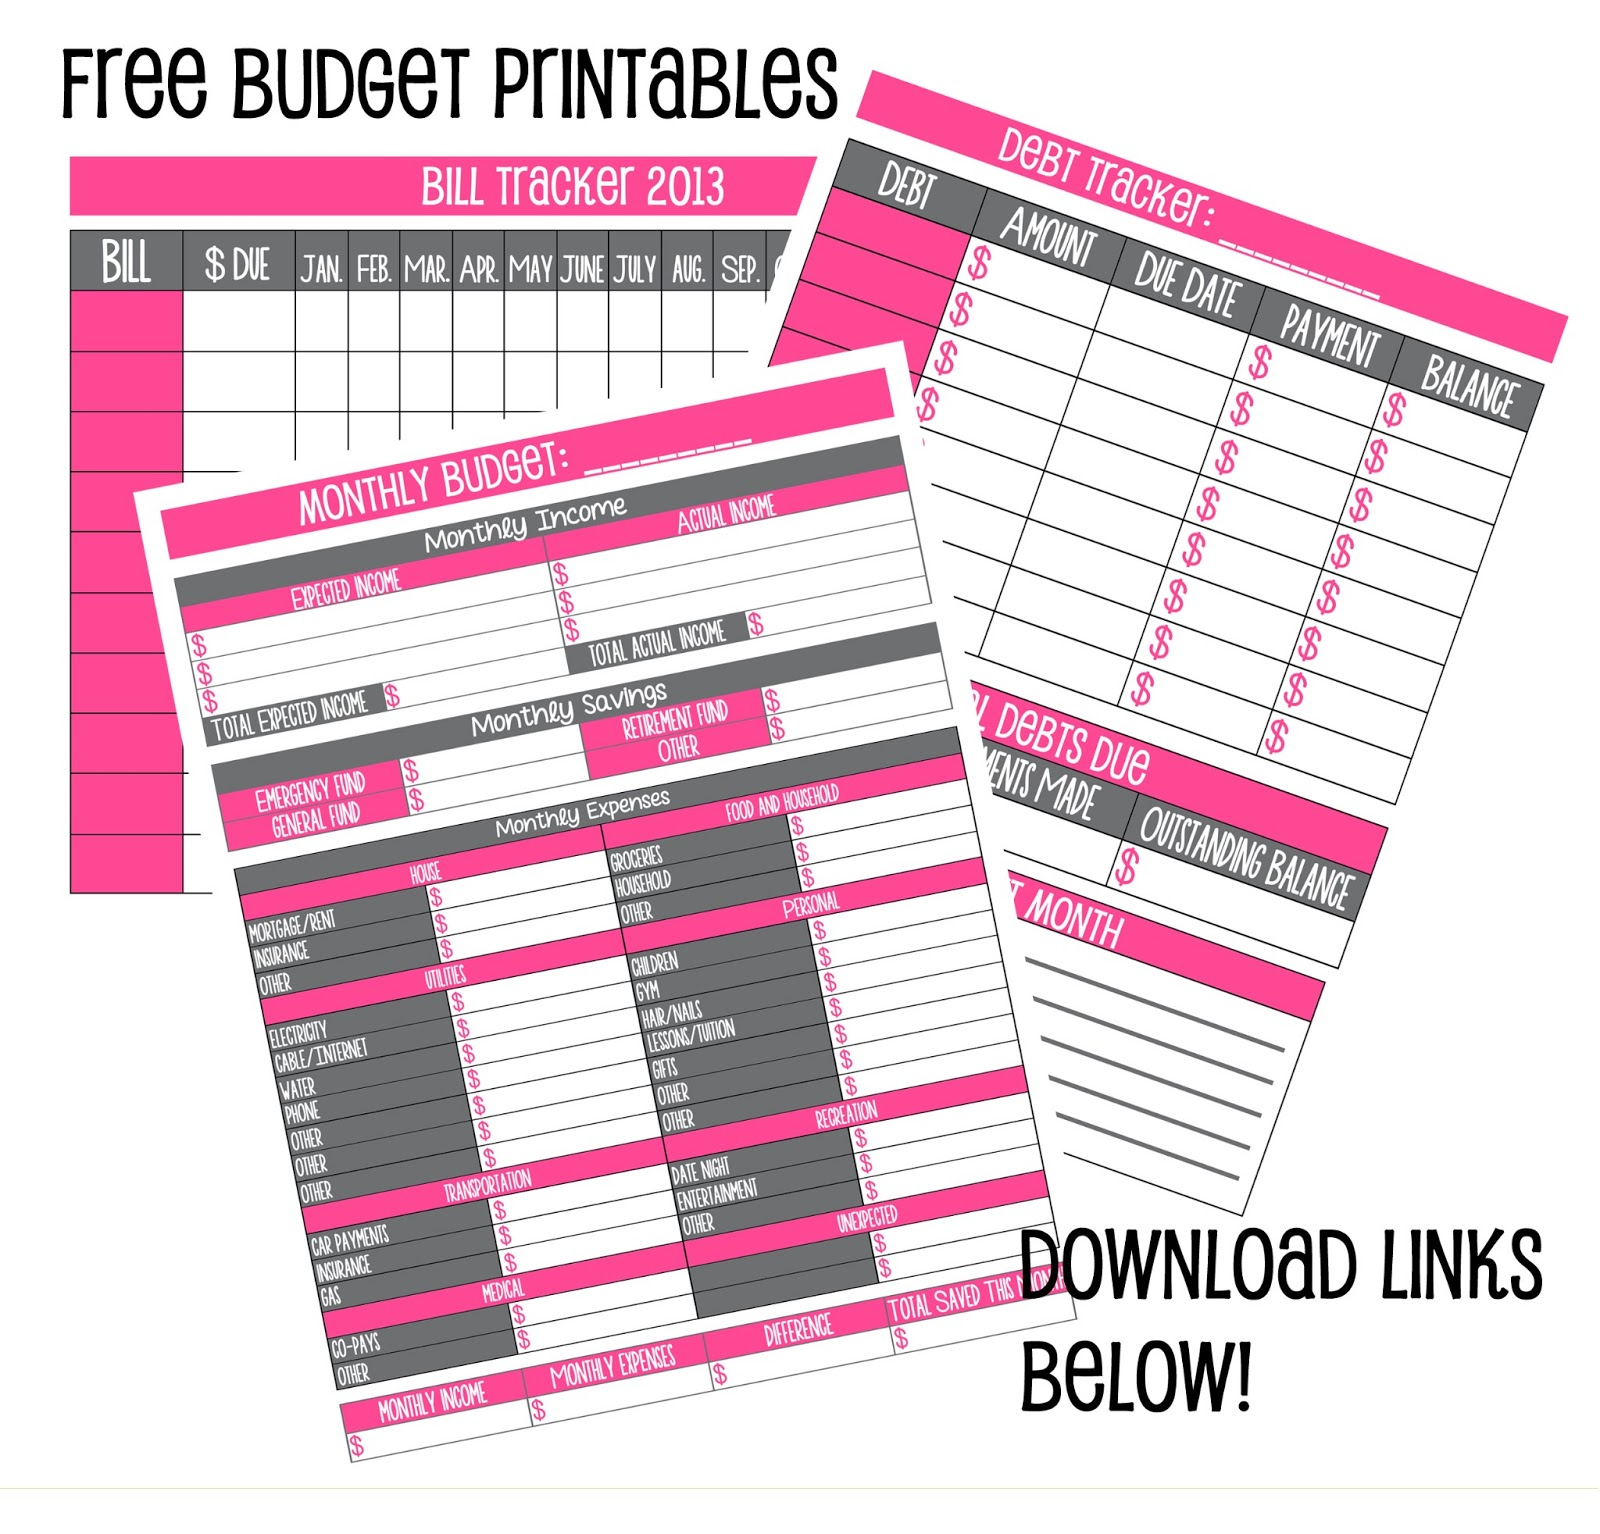 5 Images of Cute Budget Printables